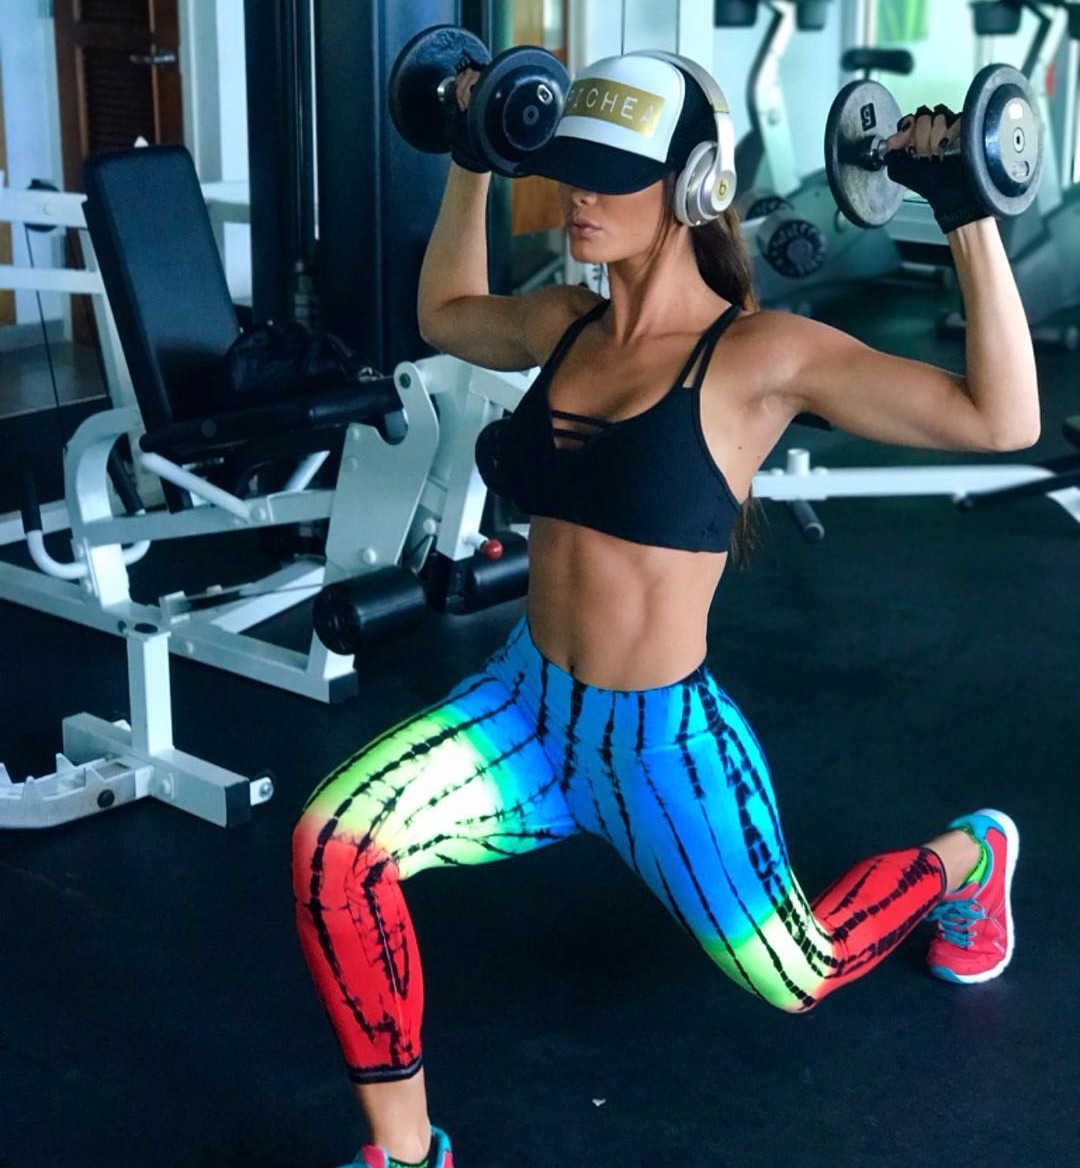 Zuleyka Rivera on one knee, she's holding a dumbbell in each hand, there's exercise equipment in the back